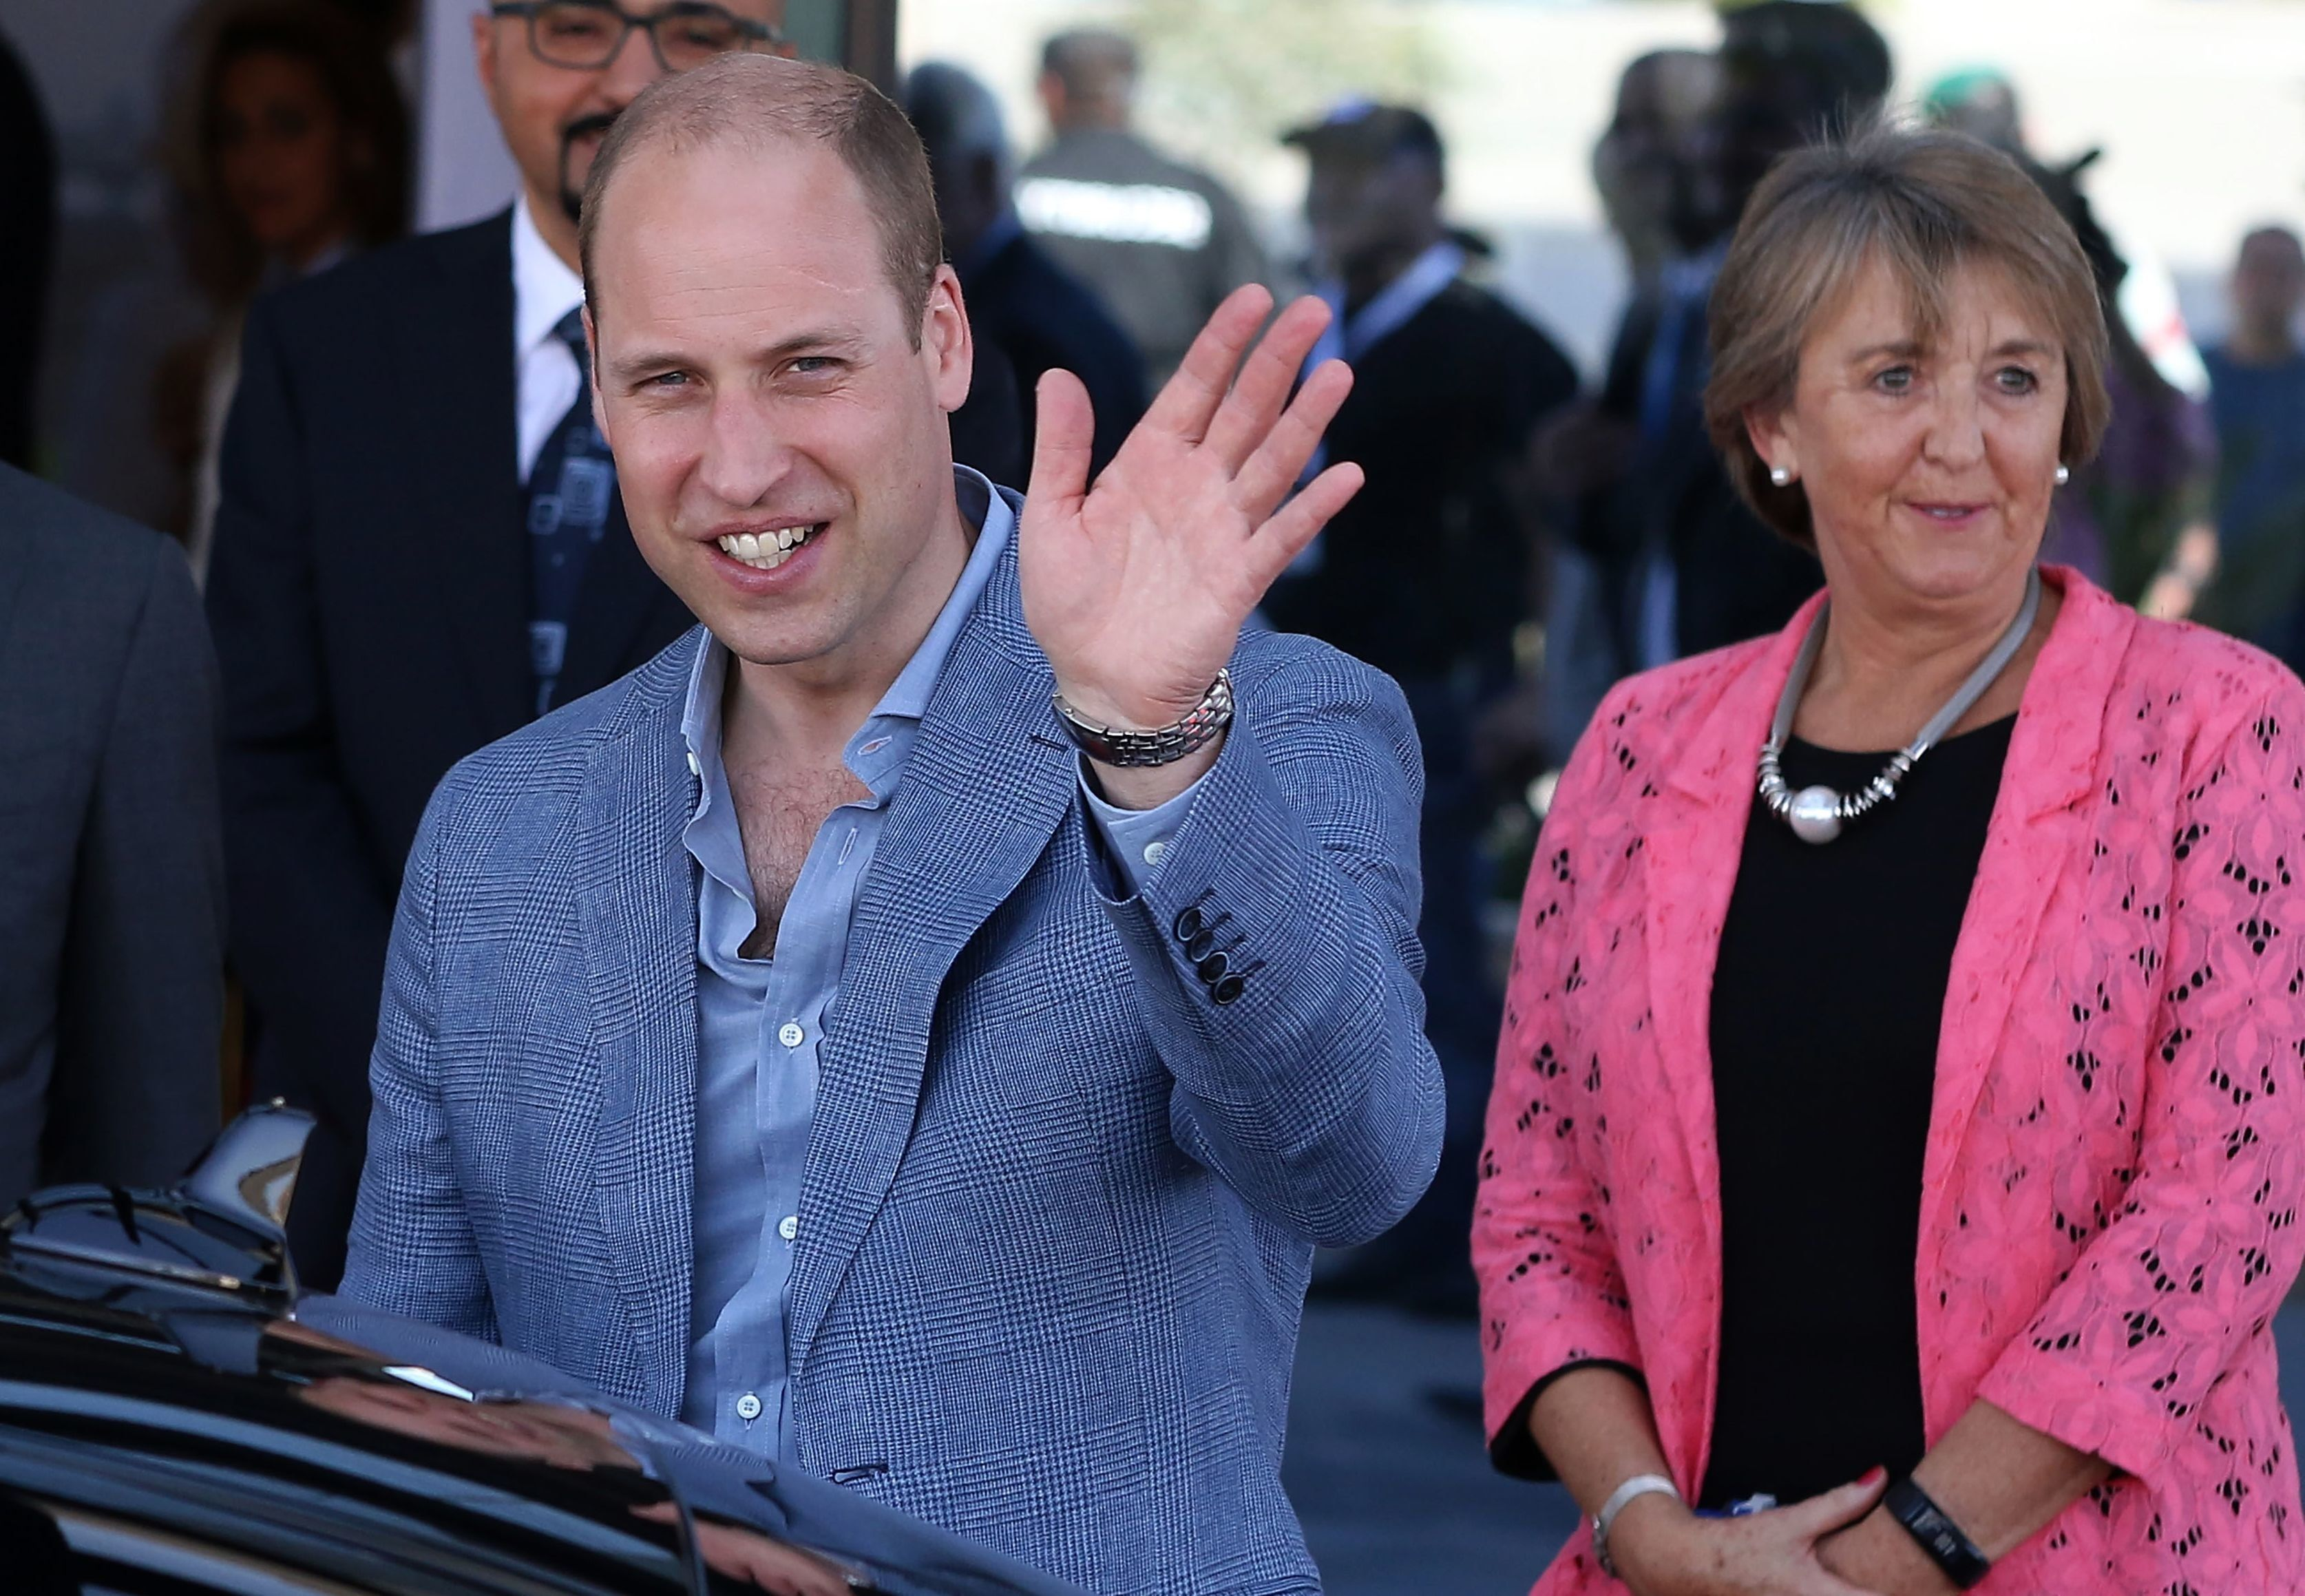 Britain's Prince William leaves following a visit at Luminus Technical University College in Amman on June 25, 2018. - William arrived in Jordan at the start of a Middle East tour that will see him become the first British royal to pay official visits to both Israel and the Palestinian territories. (Photo by Khalil MAZRAAWI / AFP)        (Photo credit should read KHALIL MAZRAAWI/AFP/Getty Images)